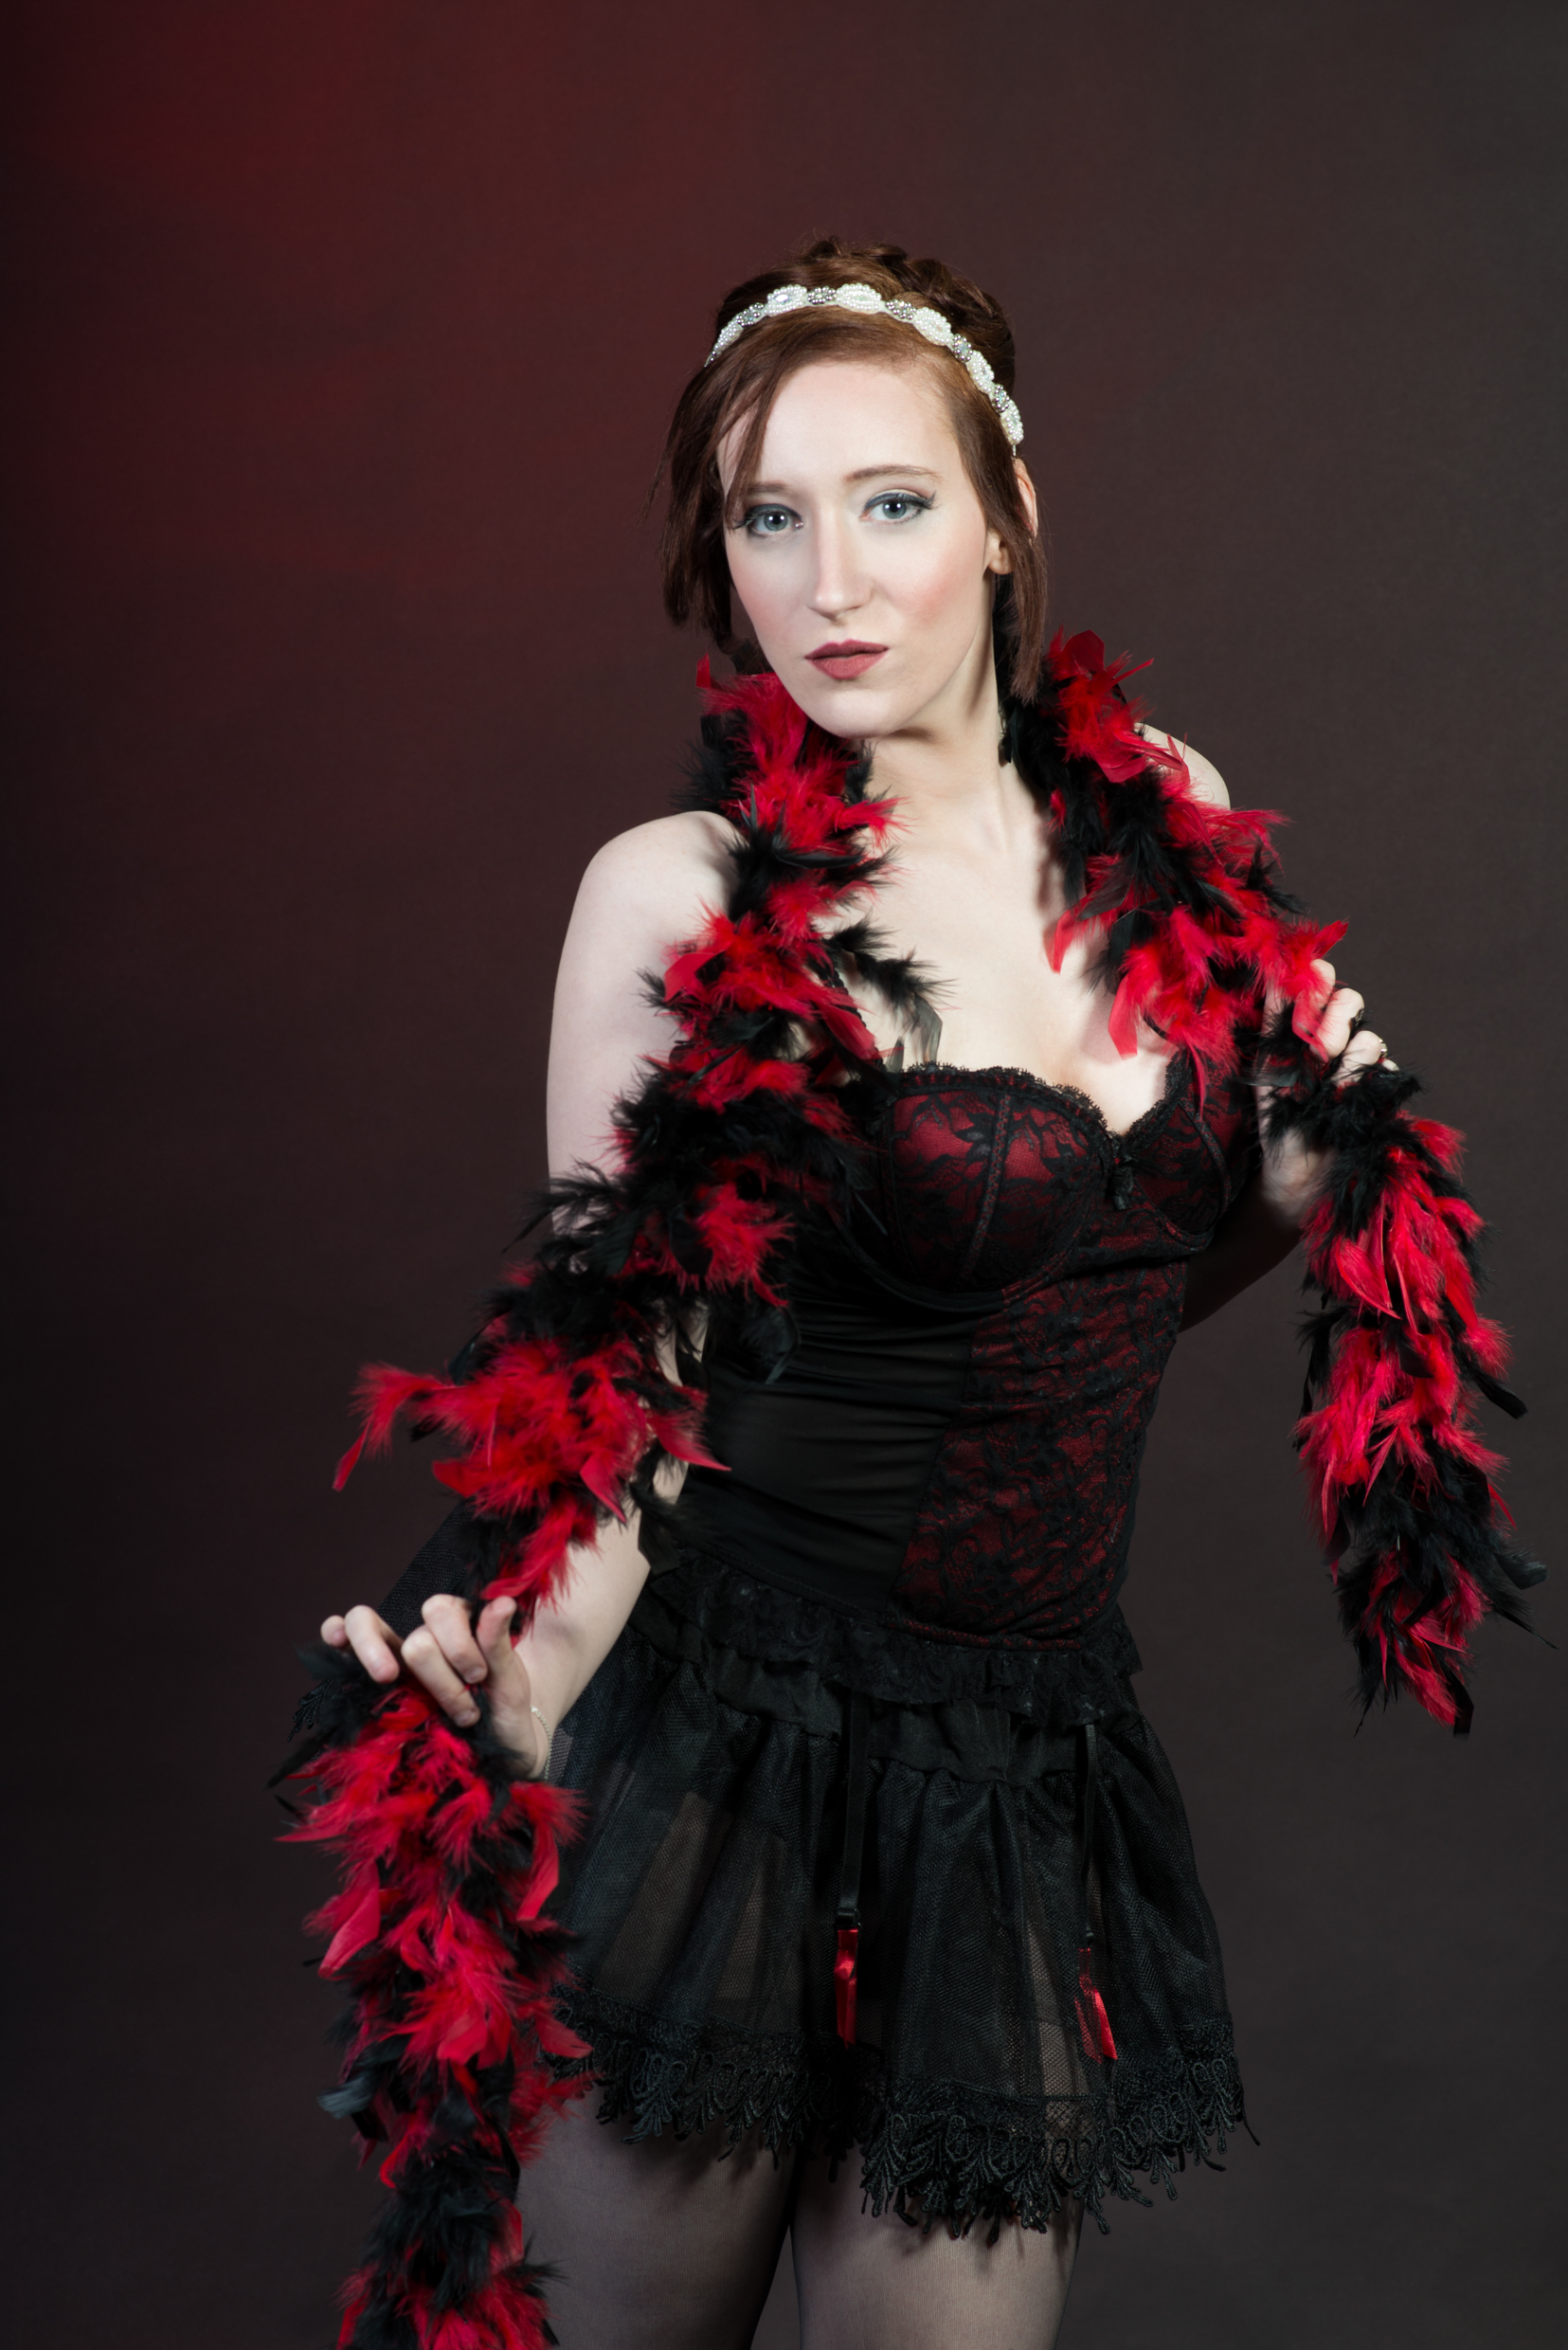 Burlesque Model with Boa in Studio